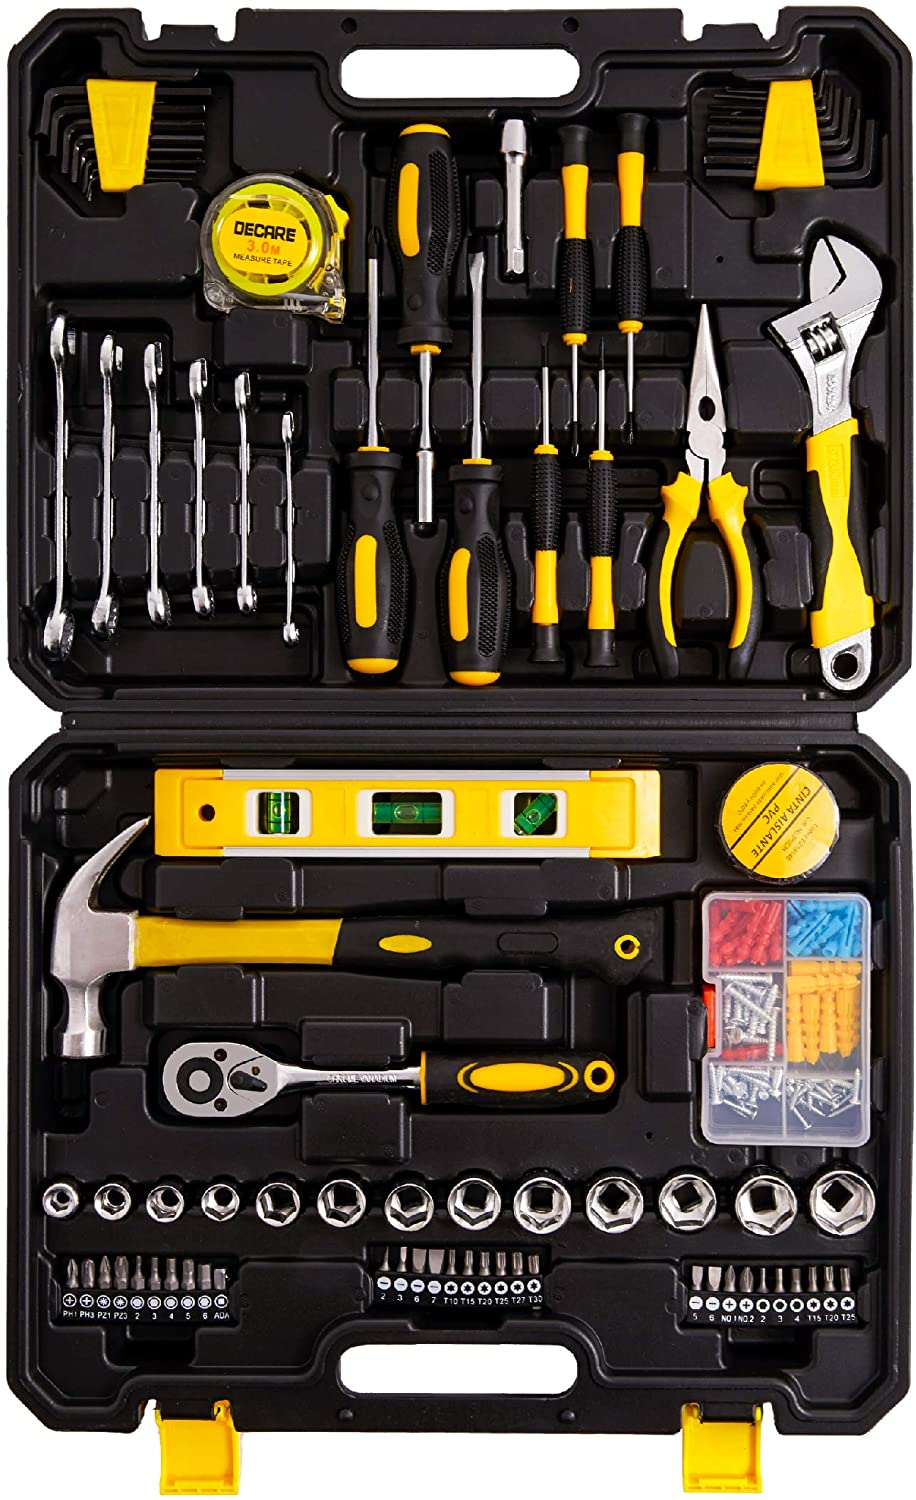 Tool Kit Tool Set 128 Pieces - Metric Household Hand Tool Kit, Auto Repair Tool Set, with Portable Toolbox DeCare (Yellow-)